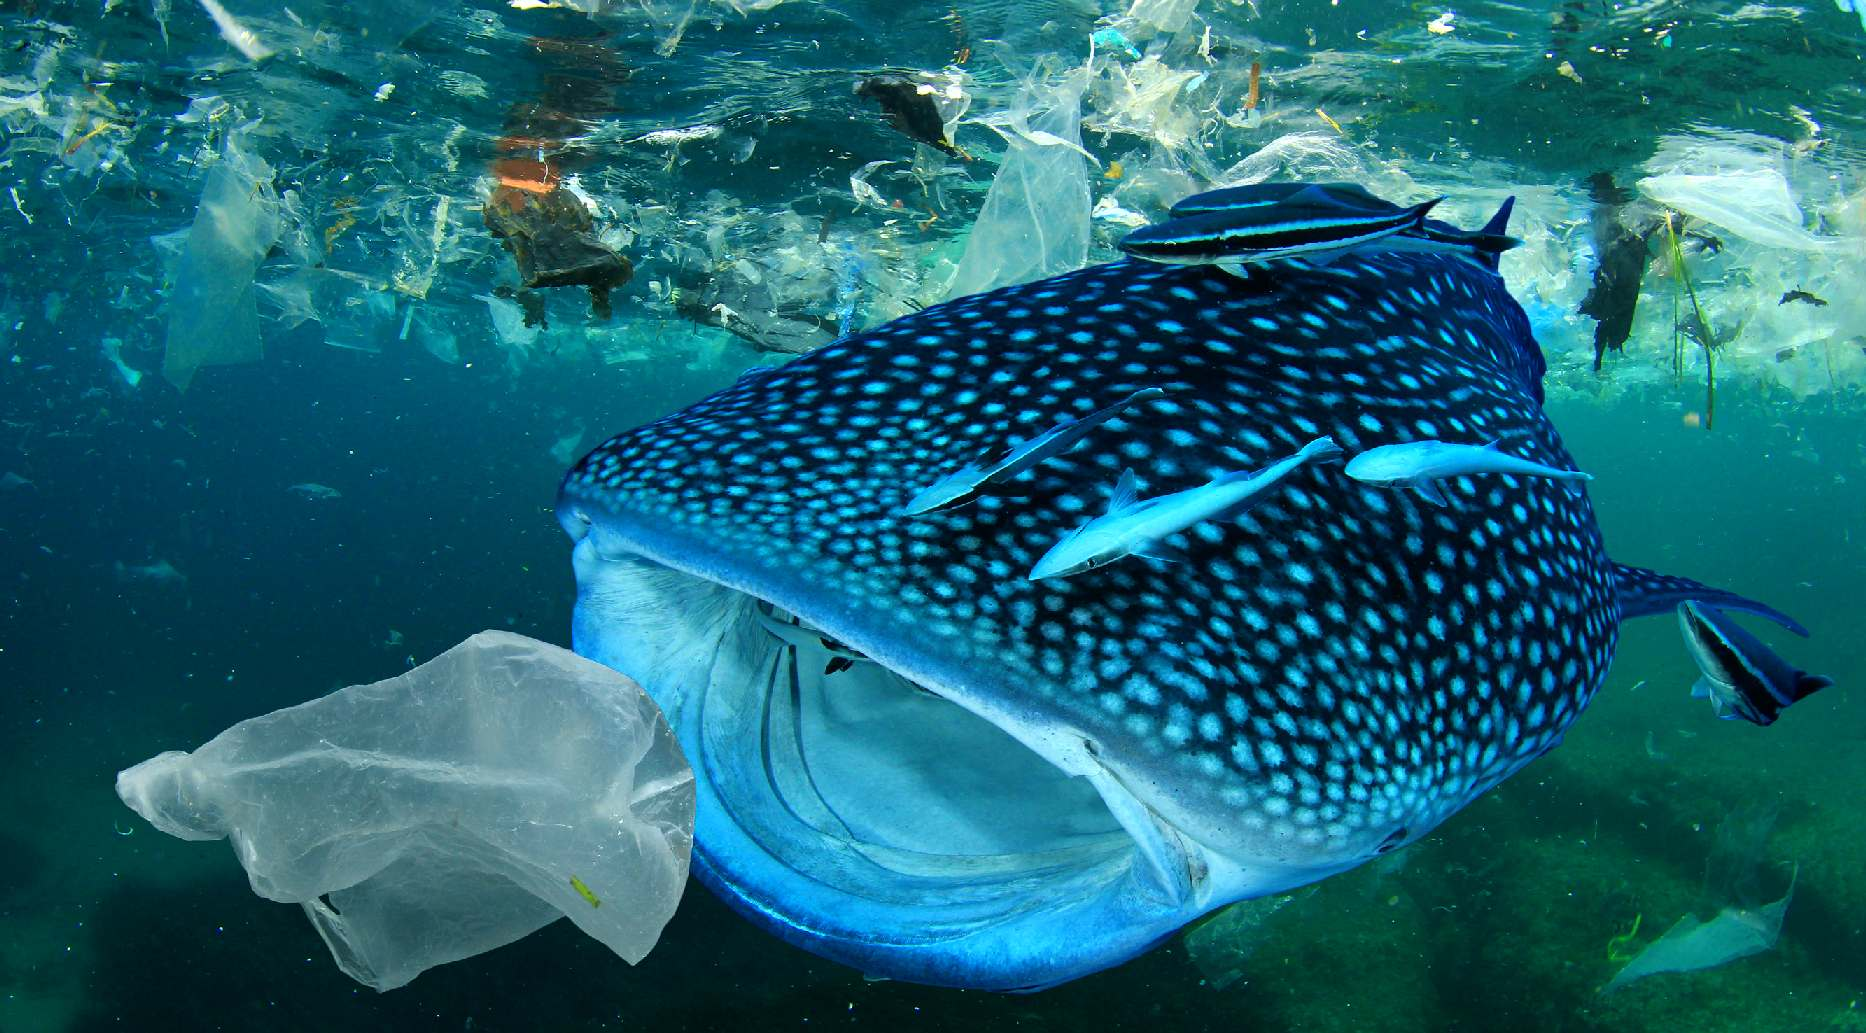 Whale shark about to eat a plastic bag